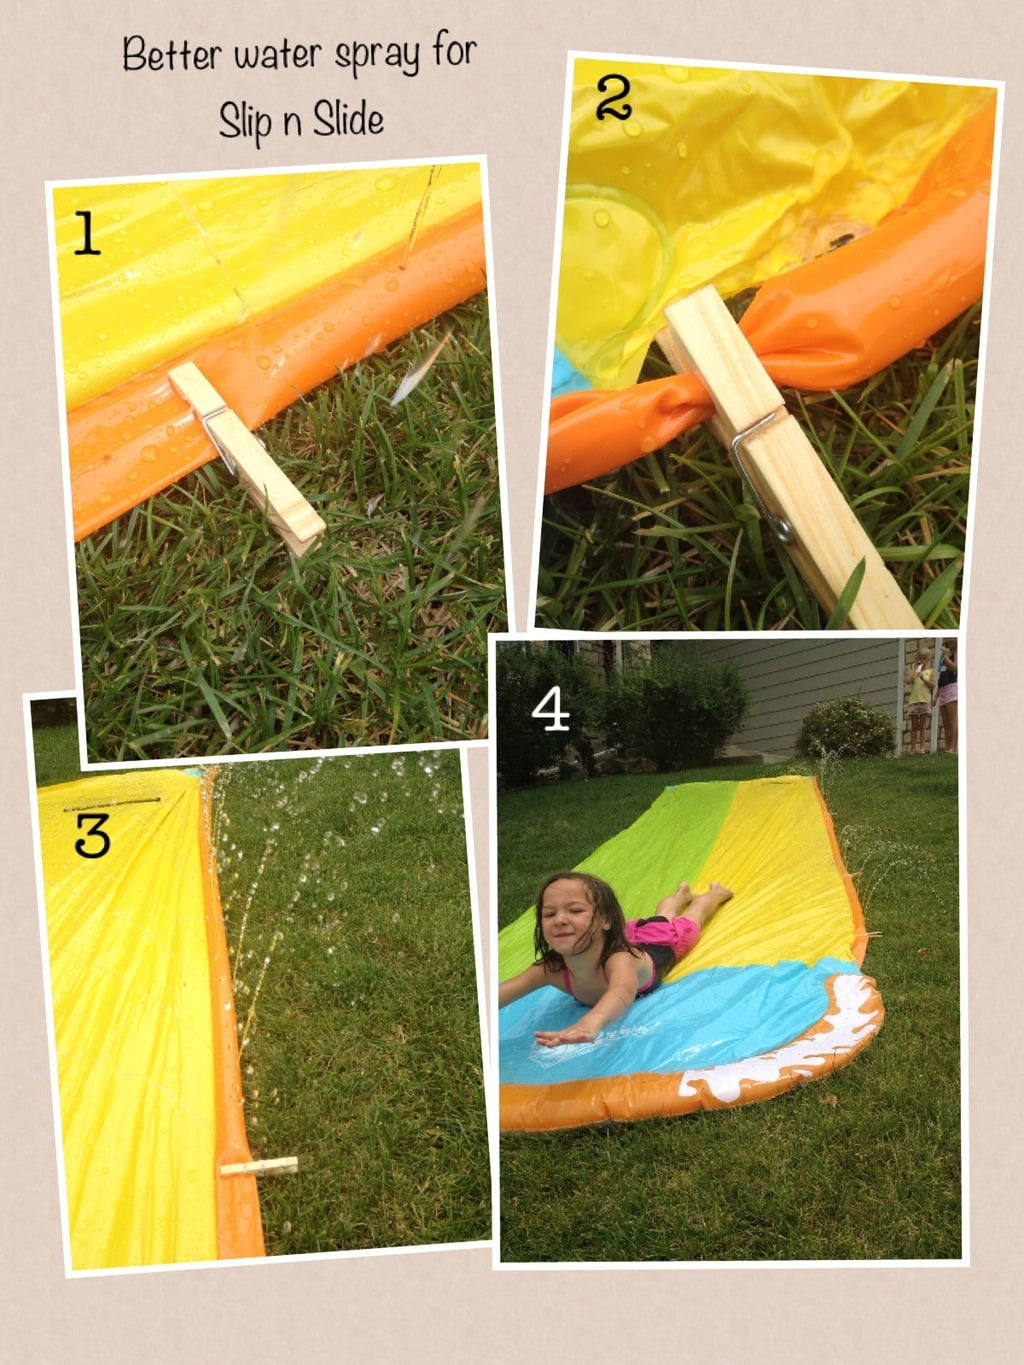 Improve The Water Spray For Your Slip N Slide